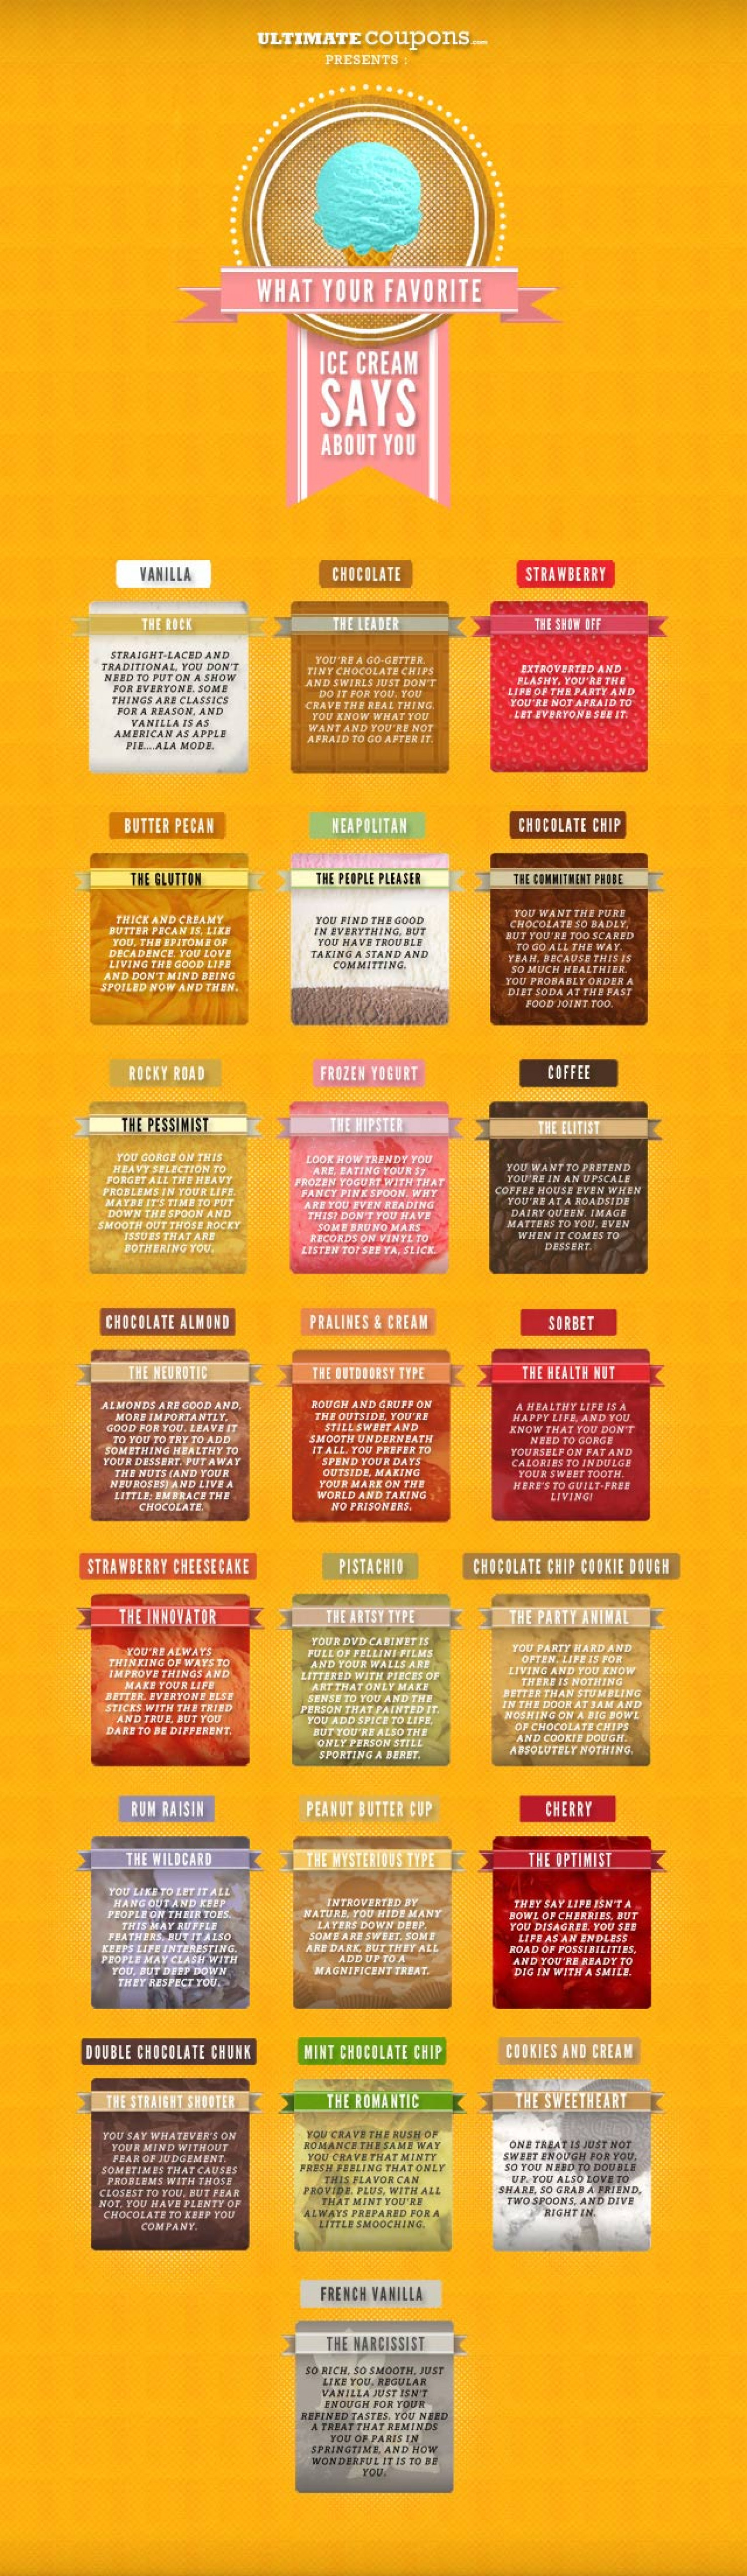 What Your Favorite Ice-Cream Says About You Infographic